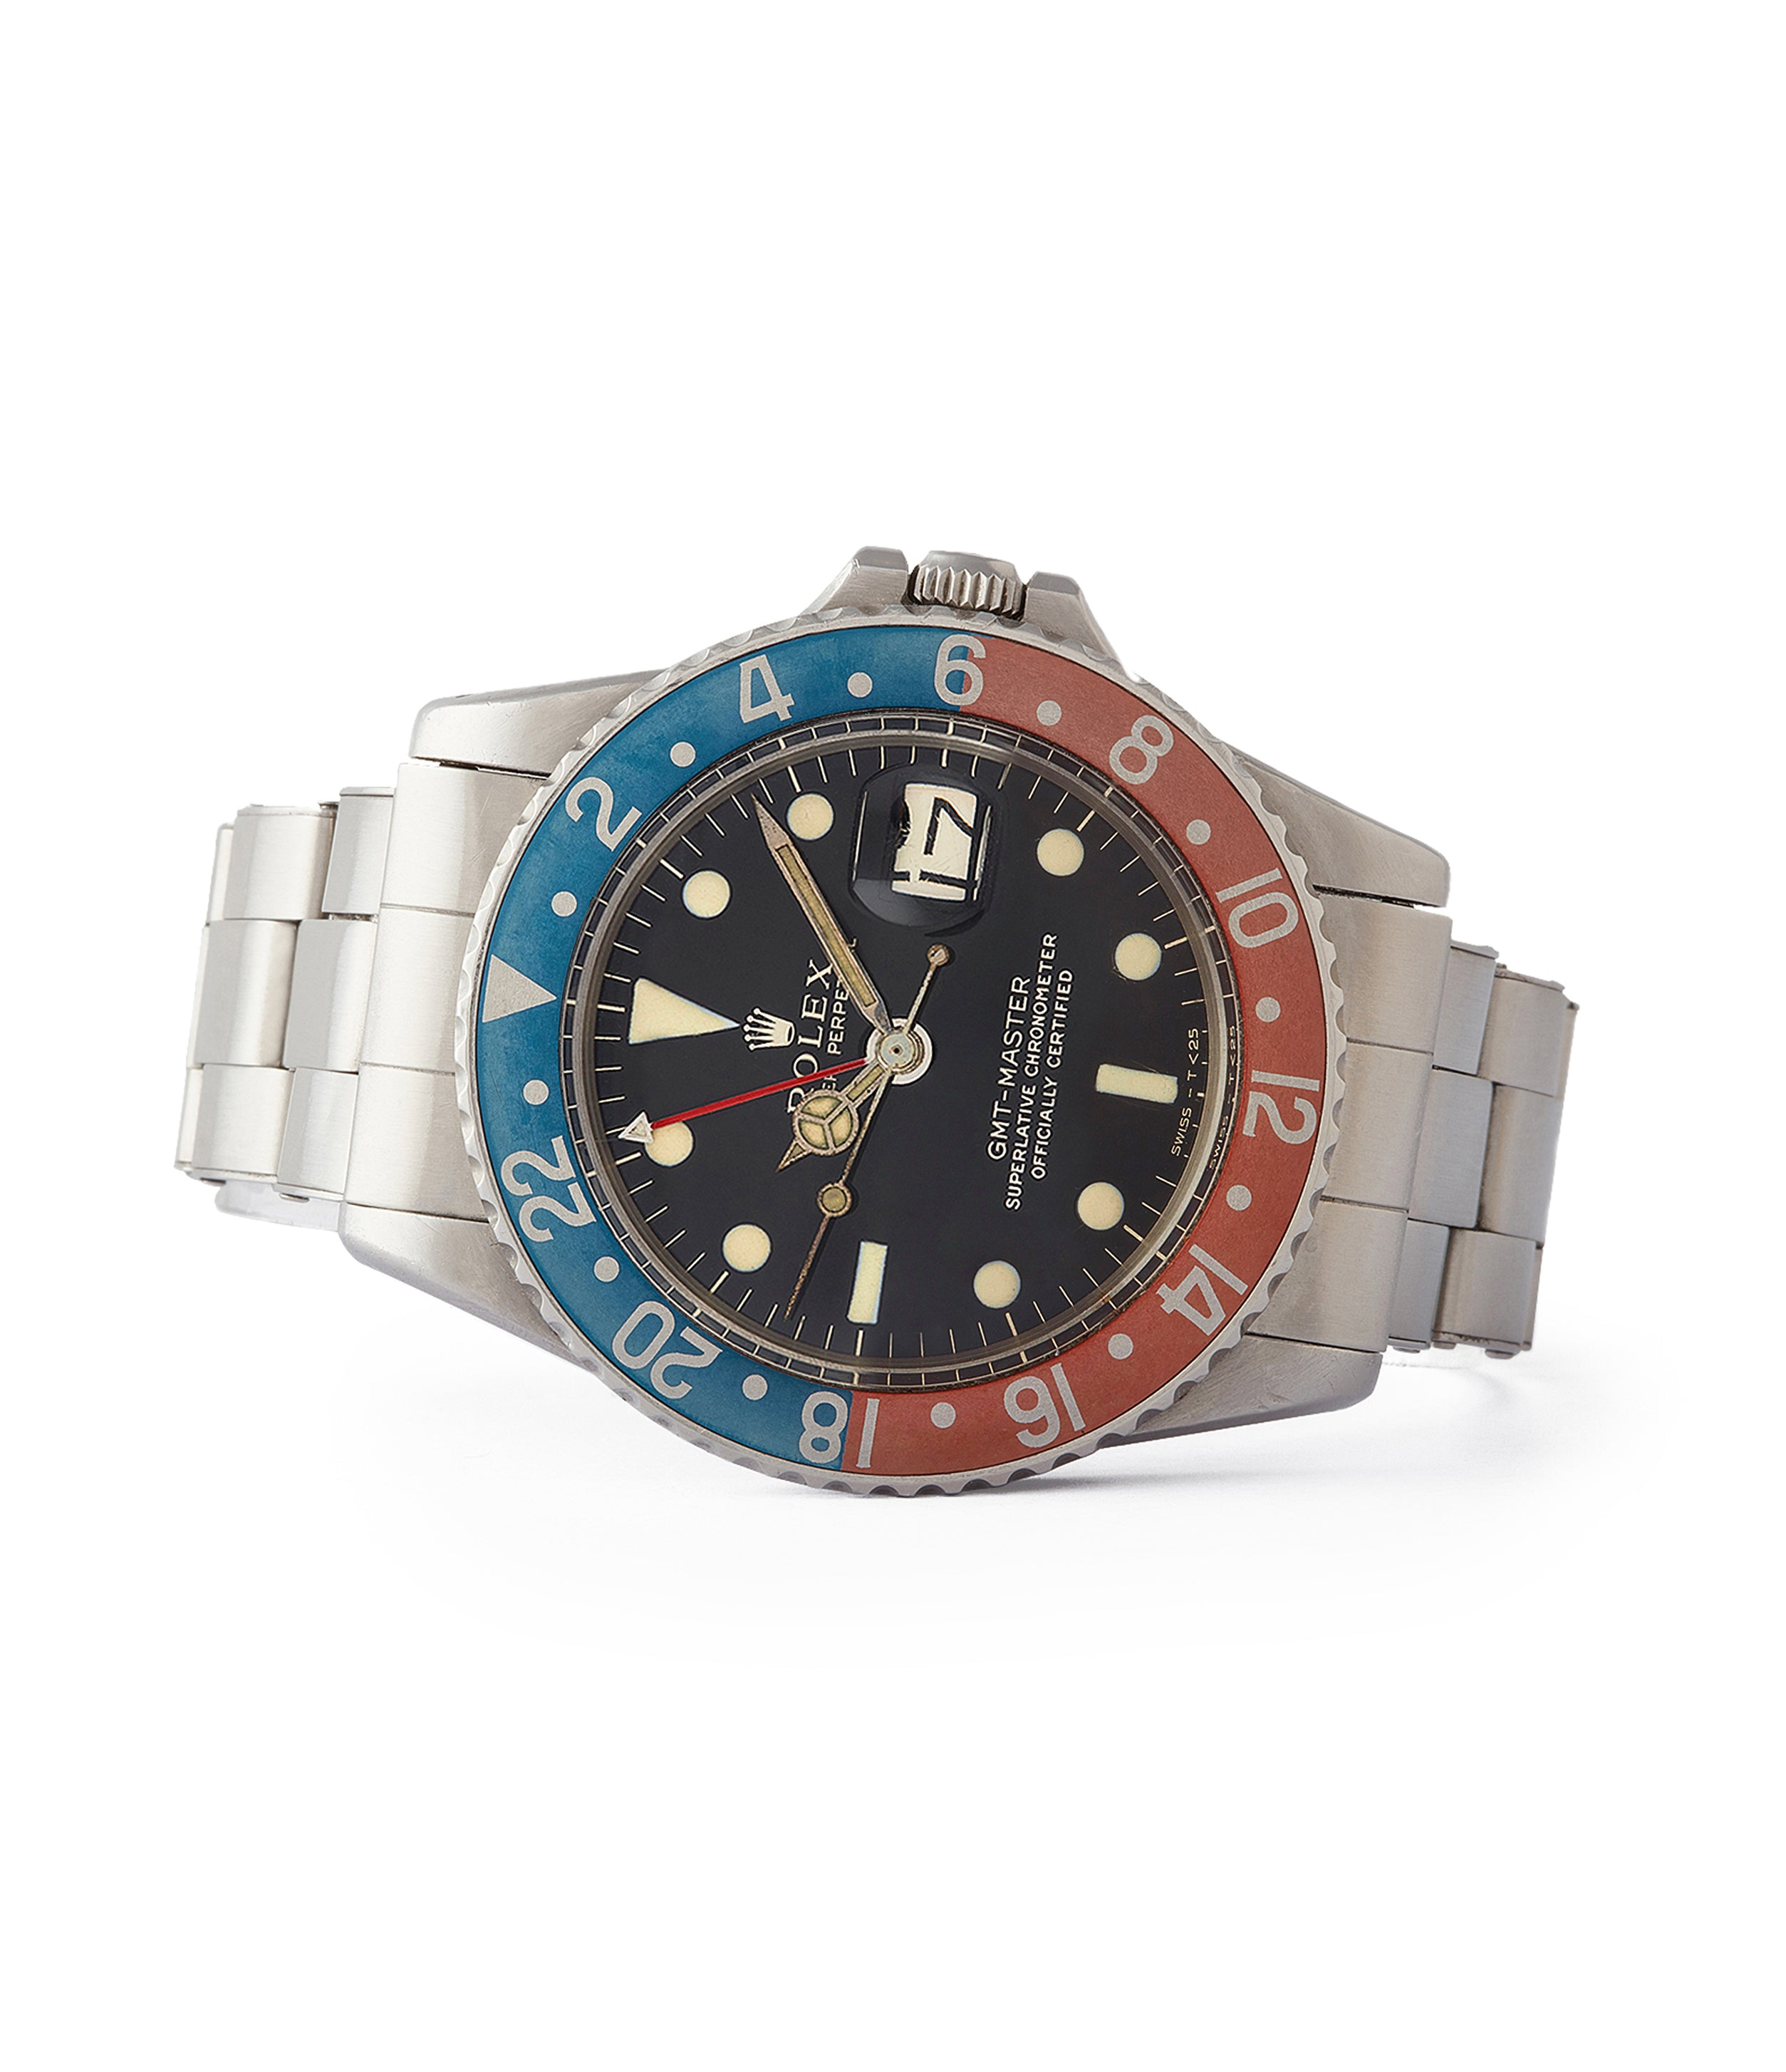 side-shot Rolex GMT-Master Pepsi bezel 1675 Gilt dial full set sports watch for sale online at A Collected Man London UK specialist of rare watches